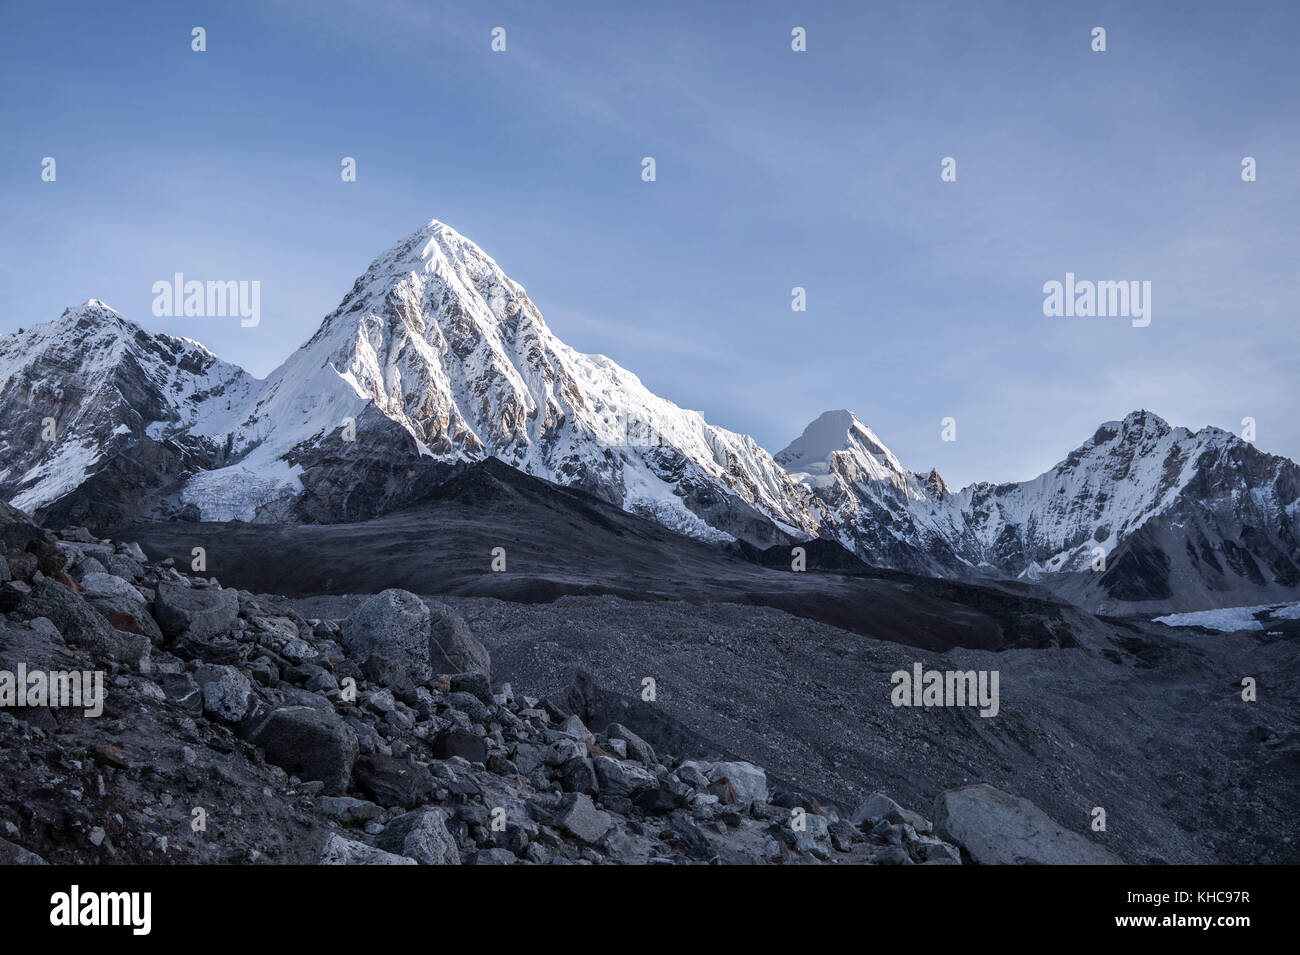 On the way to Everest Base Camp - Stock Image